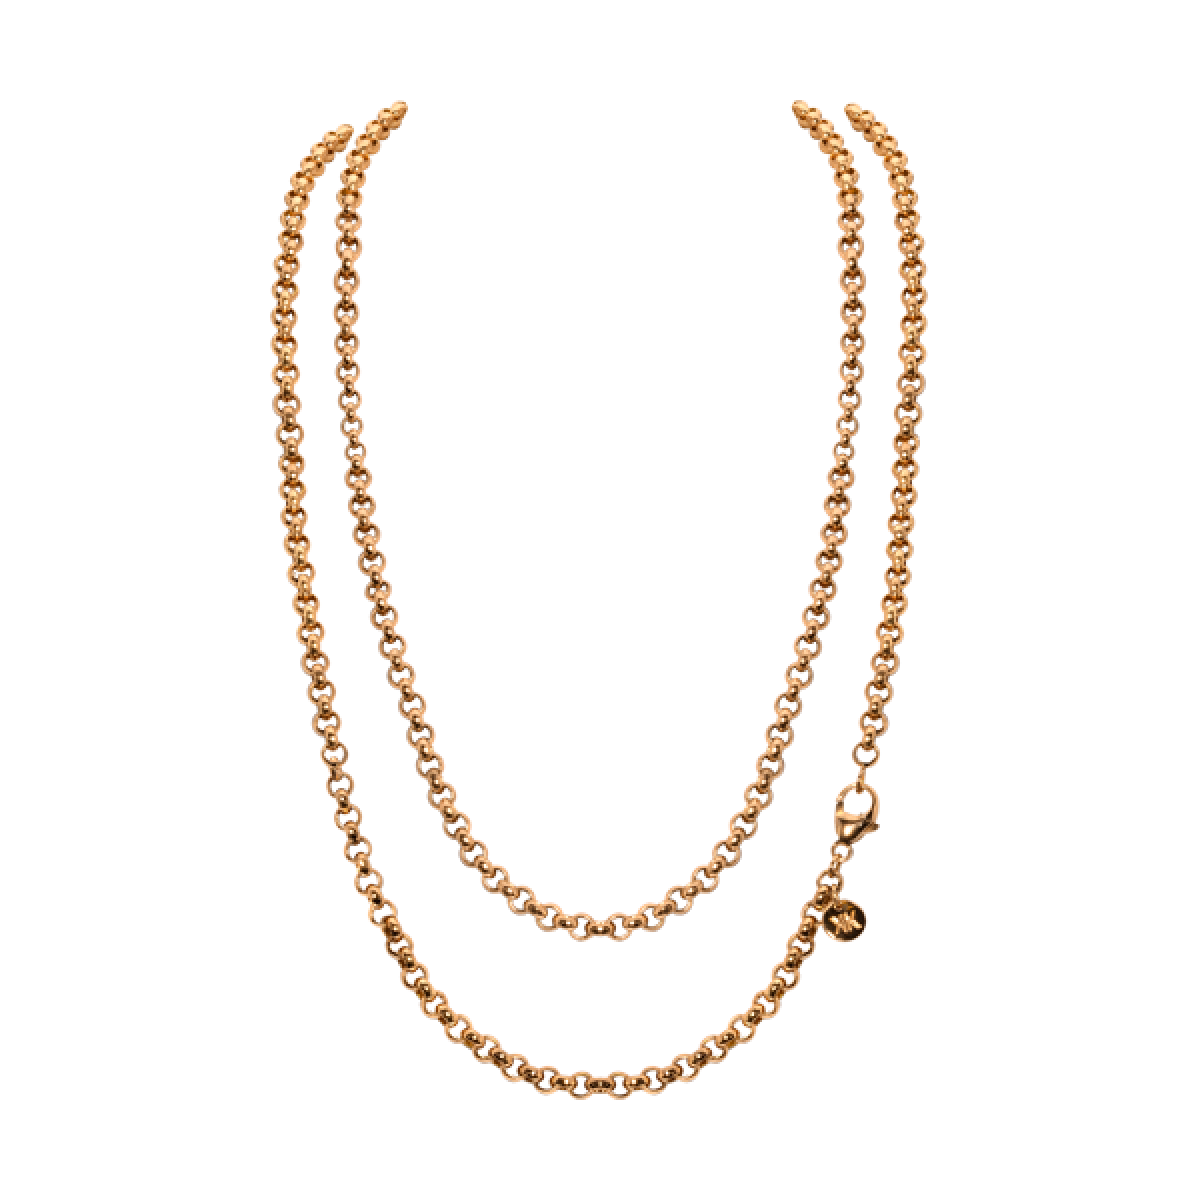 Jewellery Chain PNG Pictures